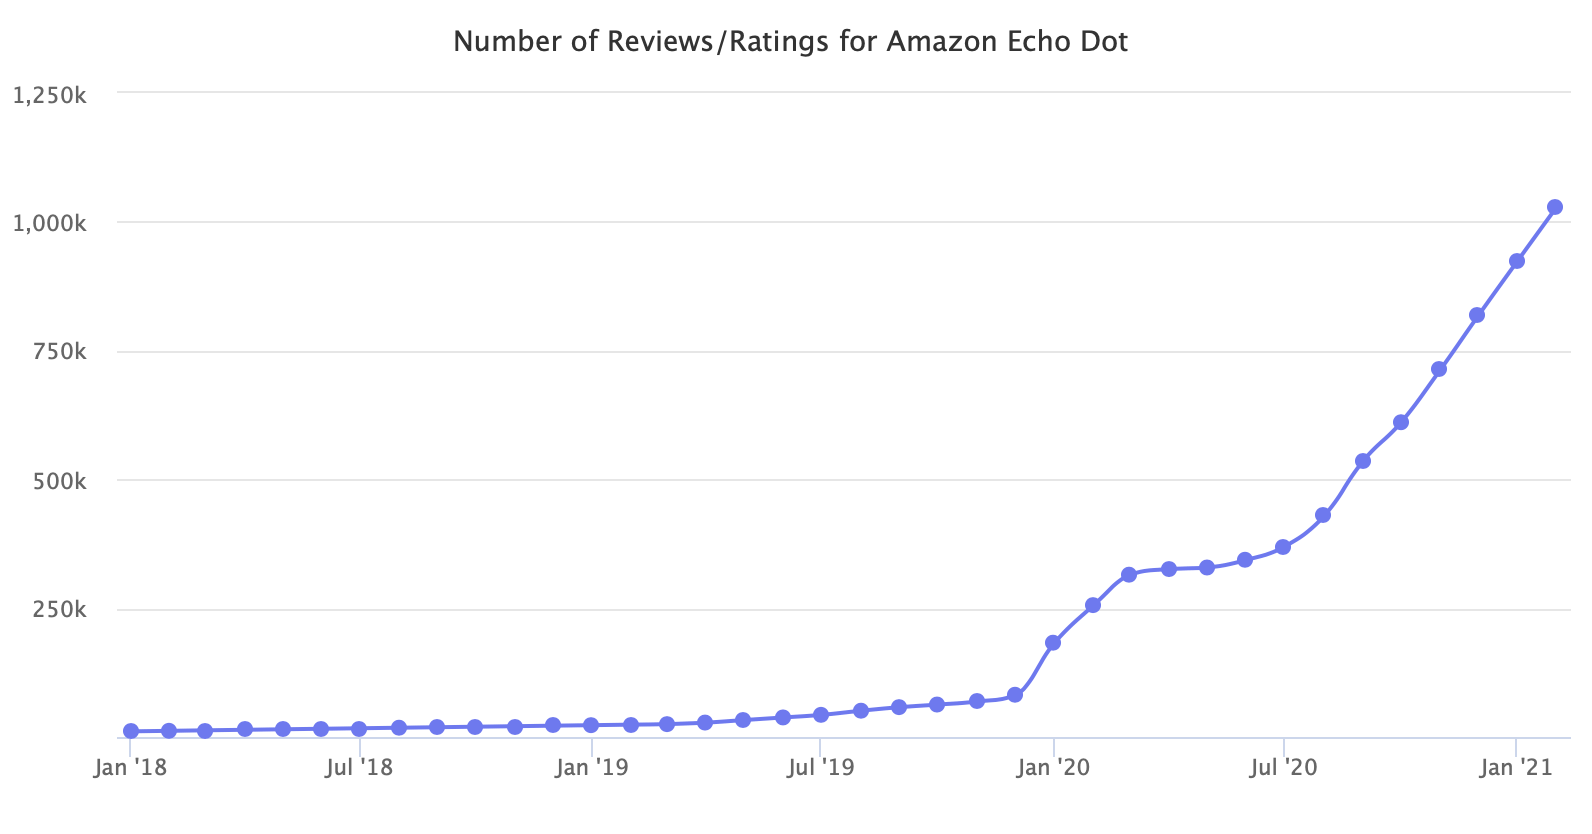 Number of Reviews/Ratings for Amazon Echo Dot